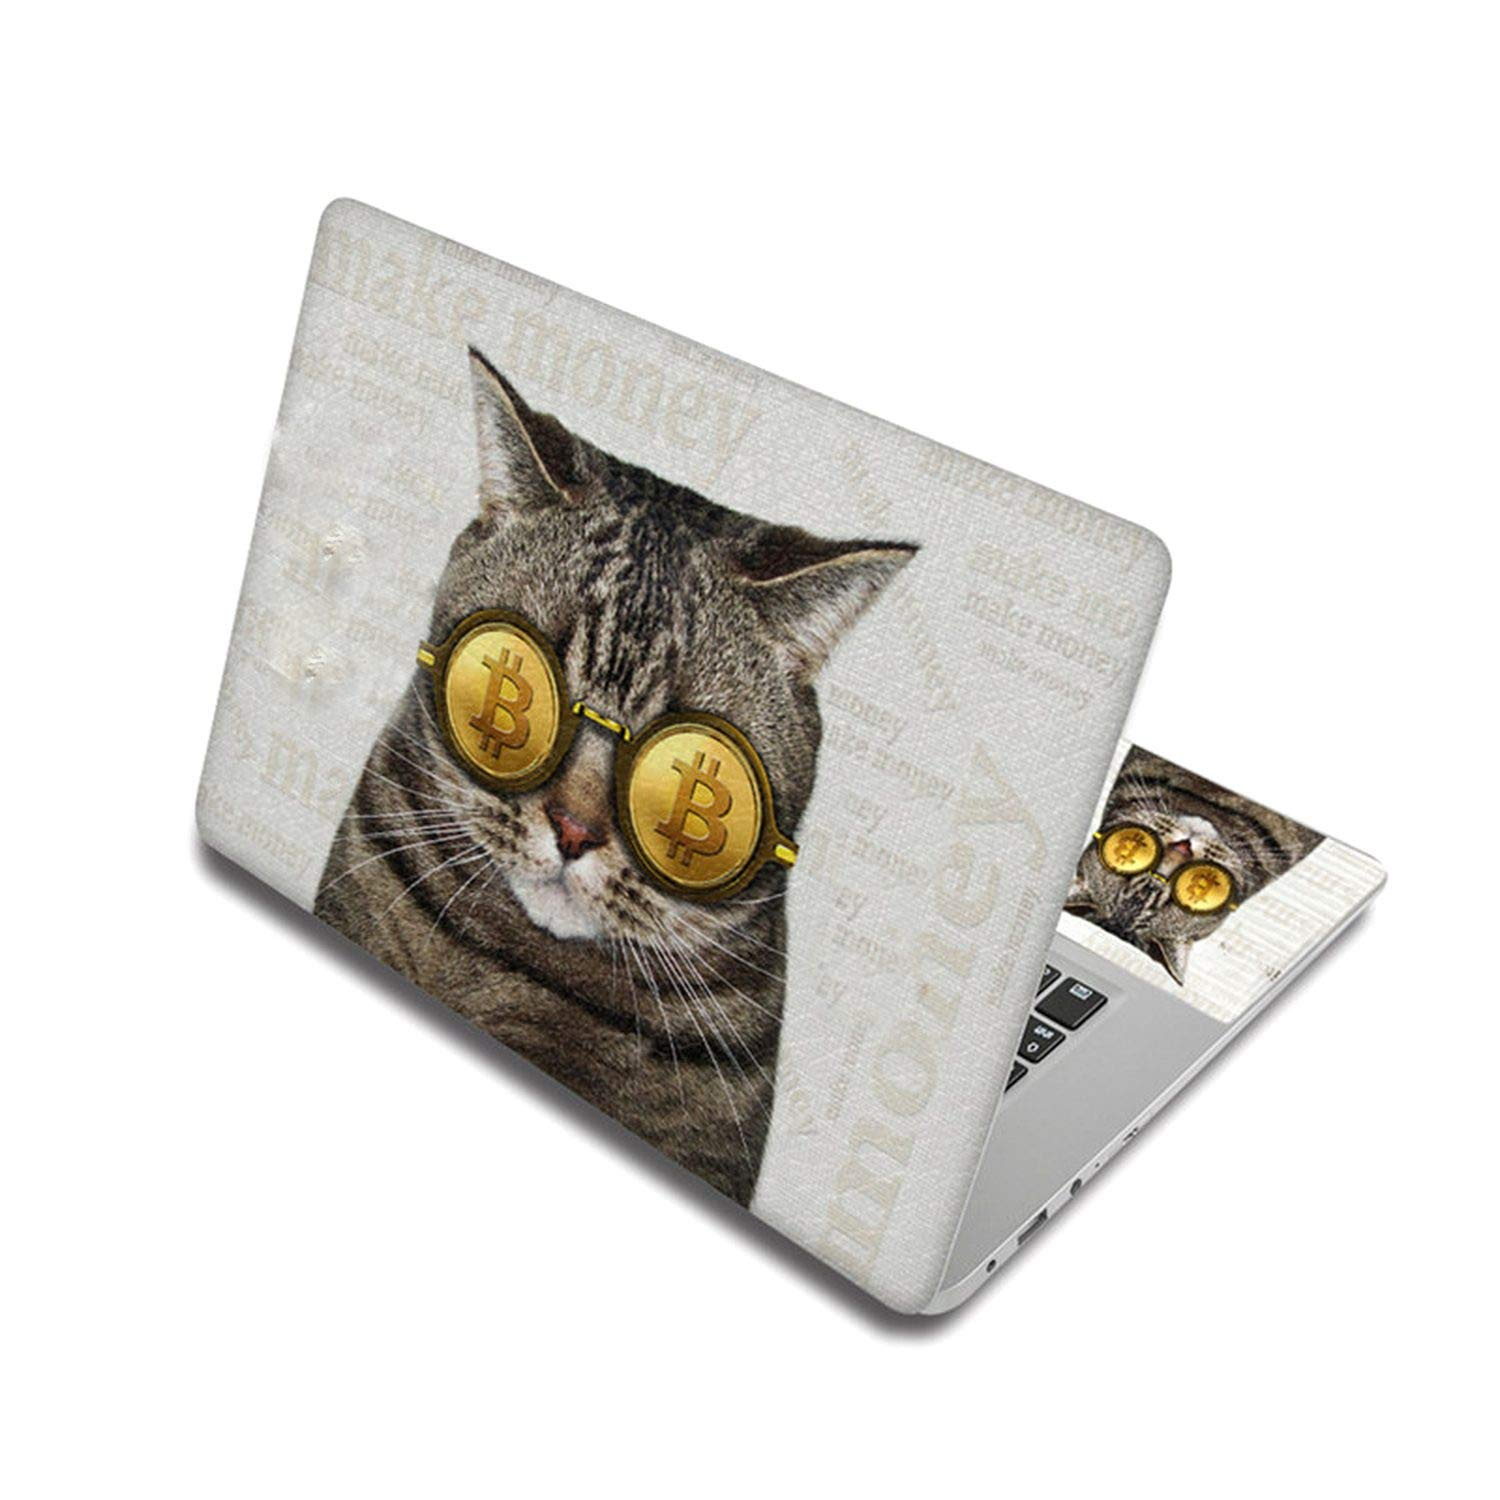 Cute Cat Pattern Sticker For Laptop Skin Removable Notebook Stickers Pc Decal For Xiaomi Pro/Mac Air/Toshiba/Hp,17 Inch,Laptop Skin 5